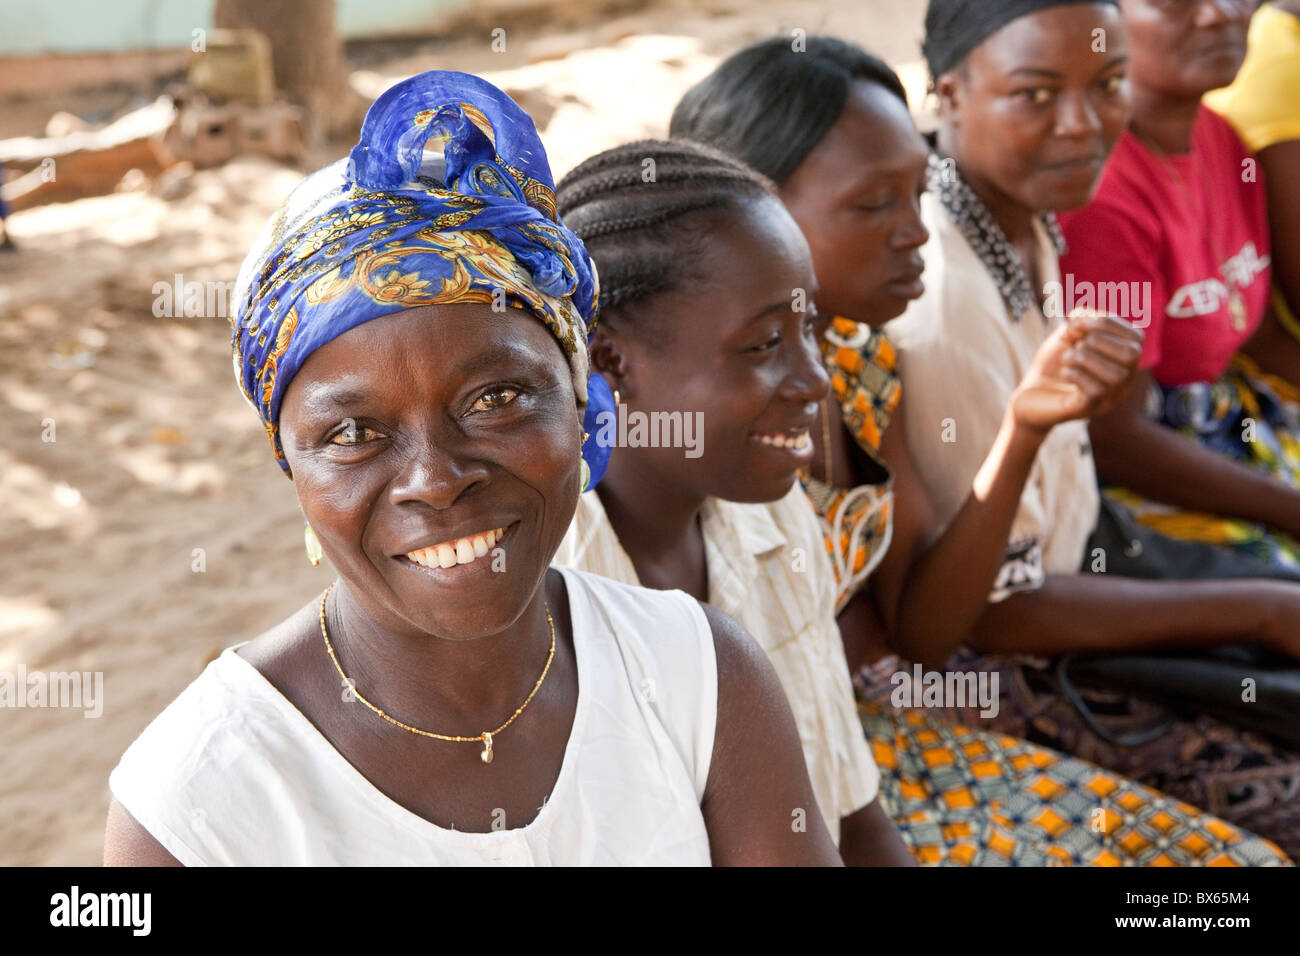 Women attend a community group meeting in Monrovia, Liberia, West Africa. - Stock Image